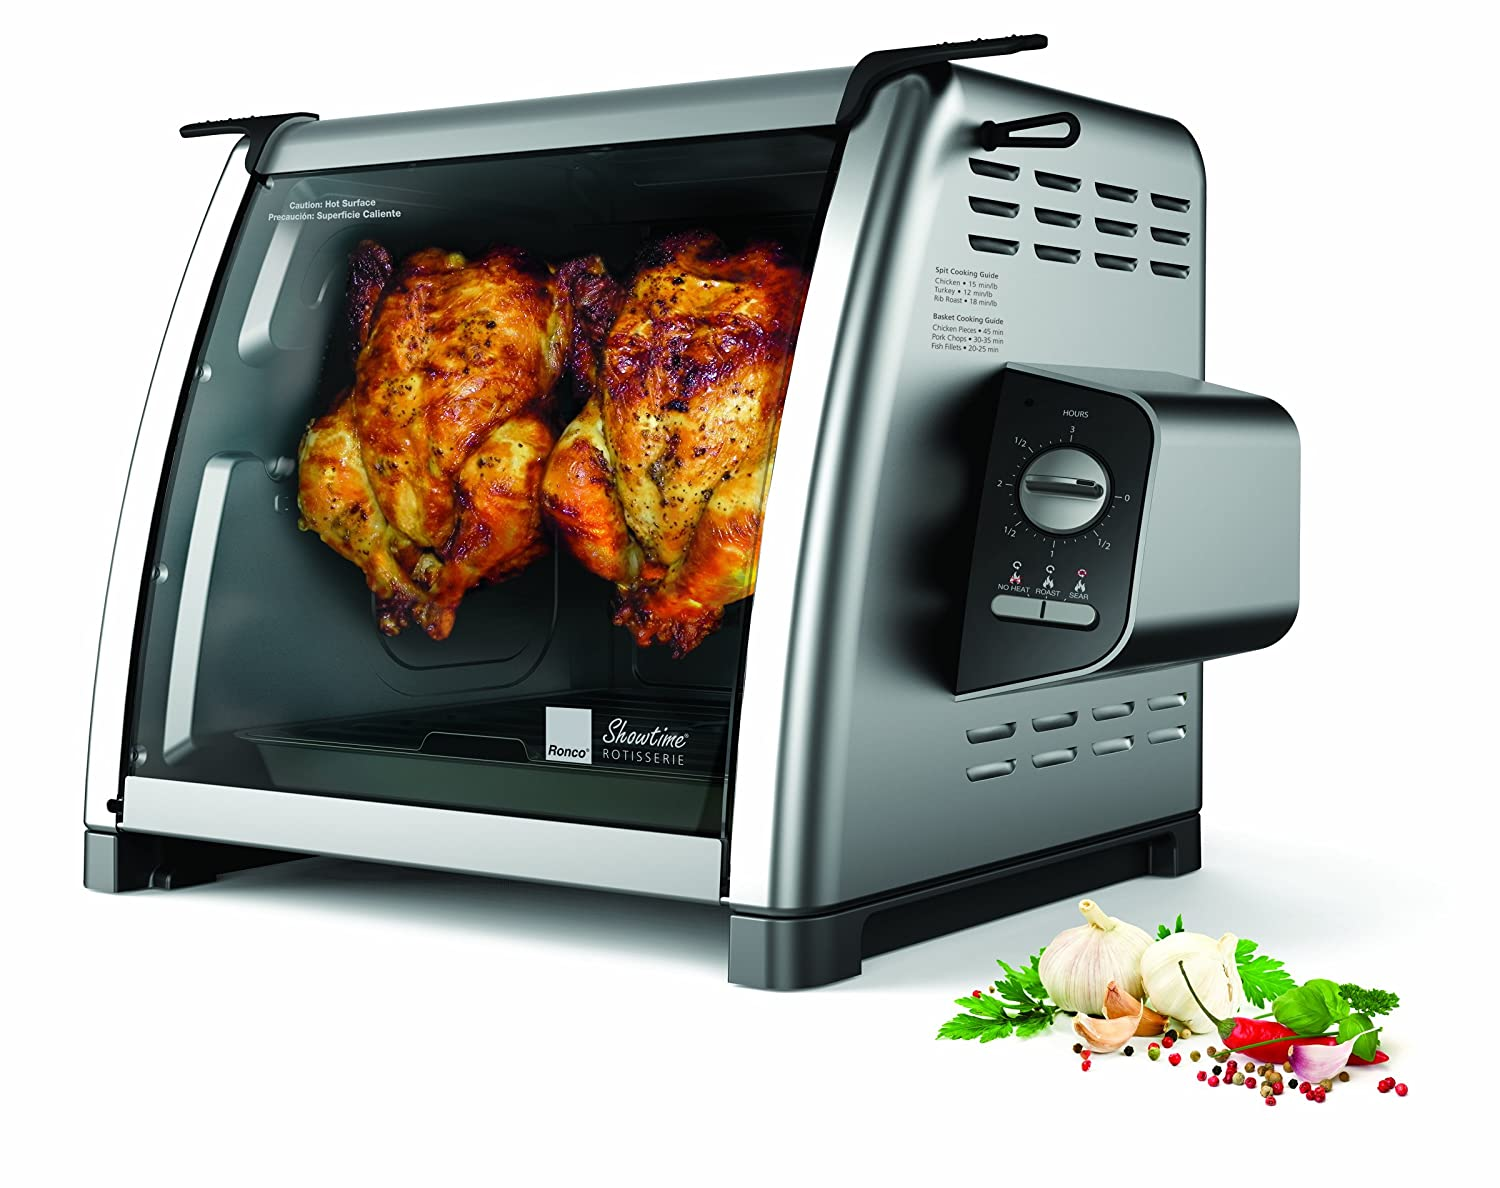 Ronco 5500 Series Rotisserie Review